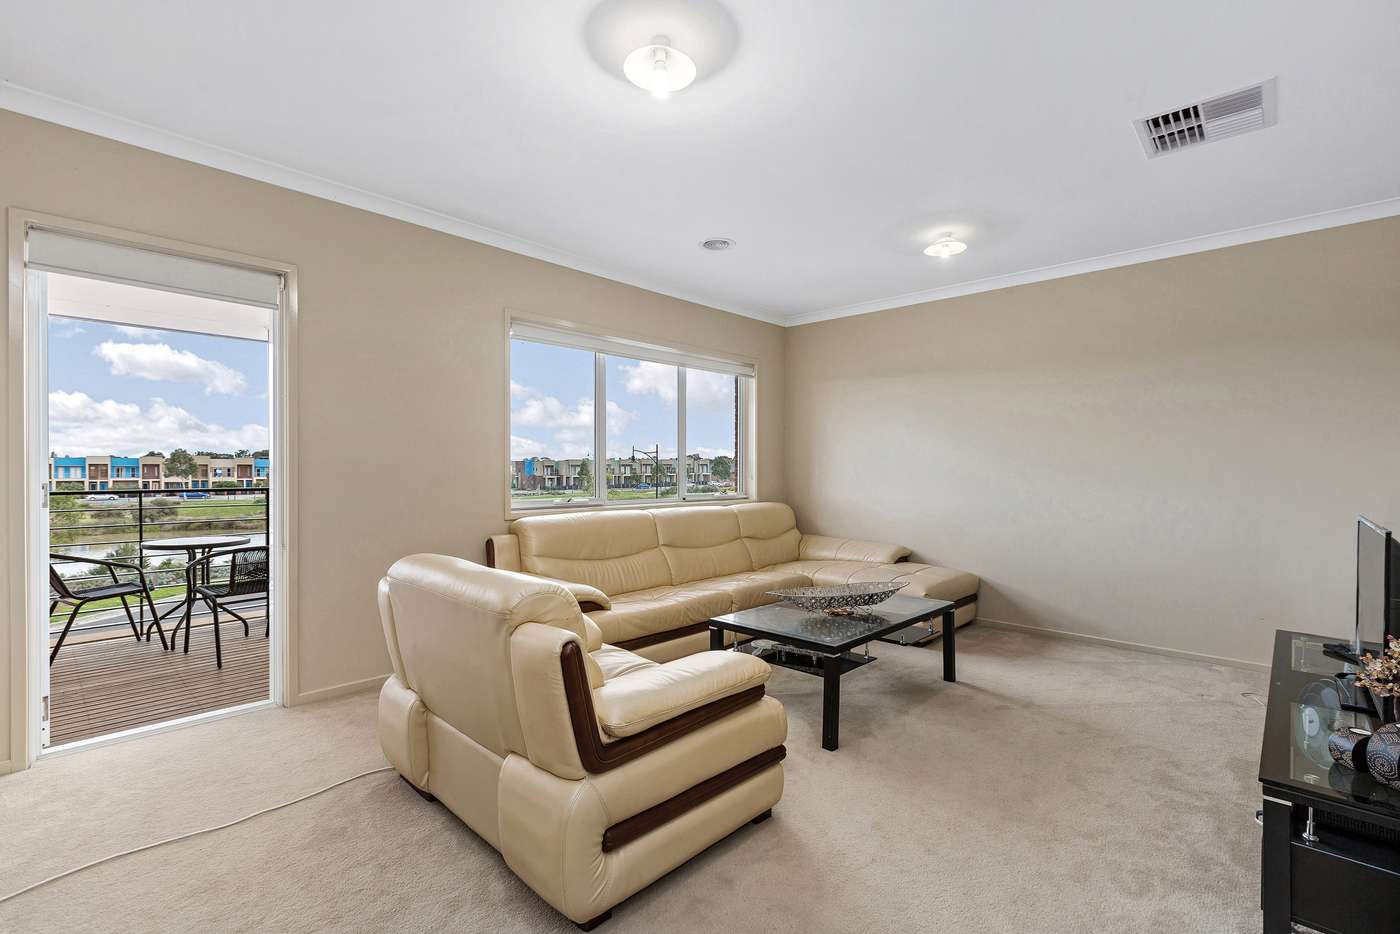 Seventh view of Homely house listing, 18 Pindaroi Court, Tarneit VIC 3029